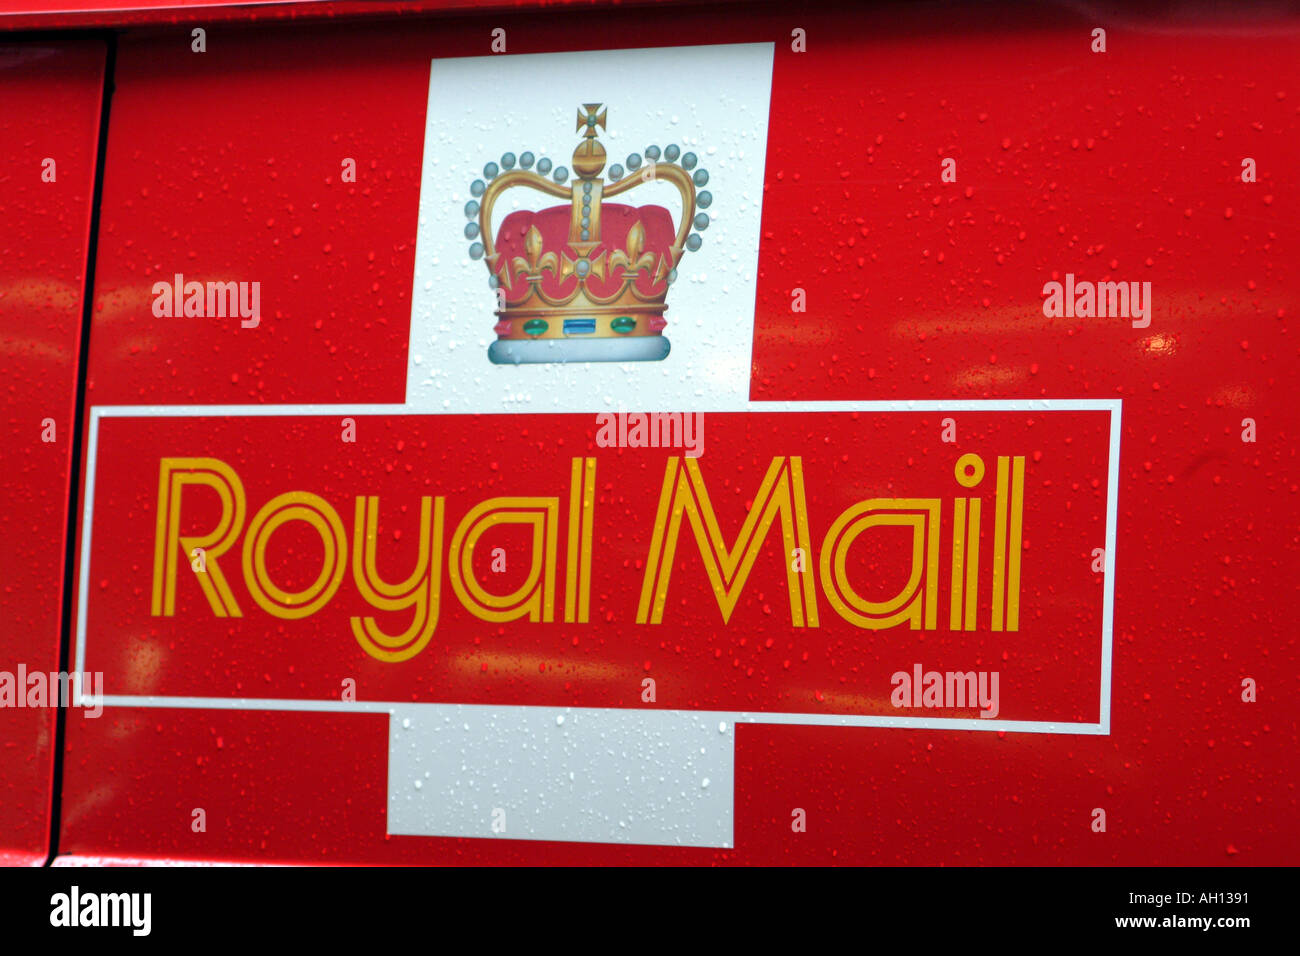 Royal Mail Logo on Post Office Van - Stock Image